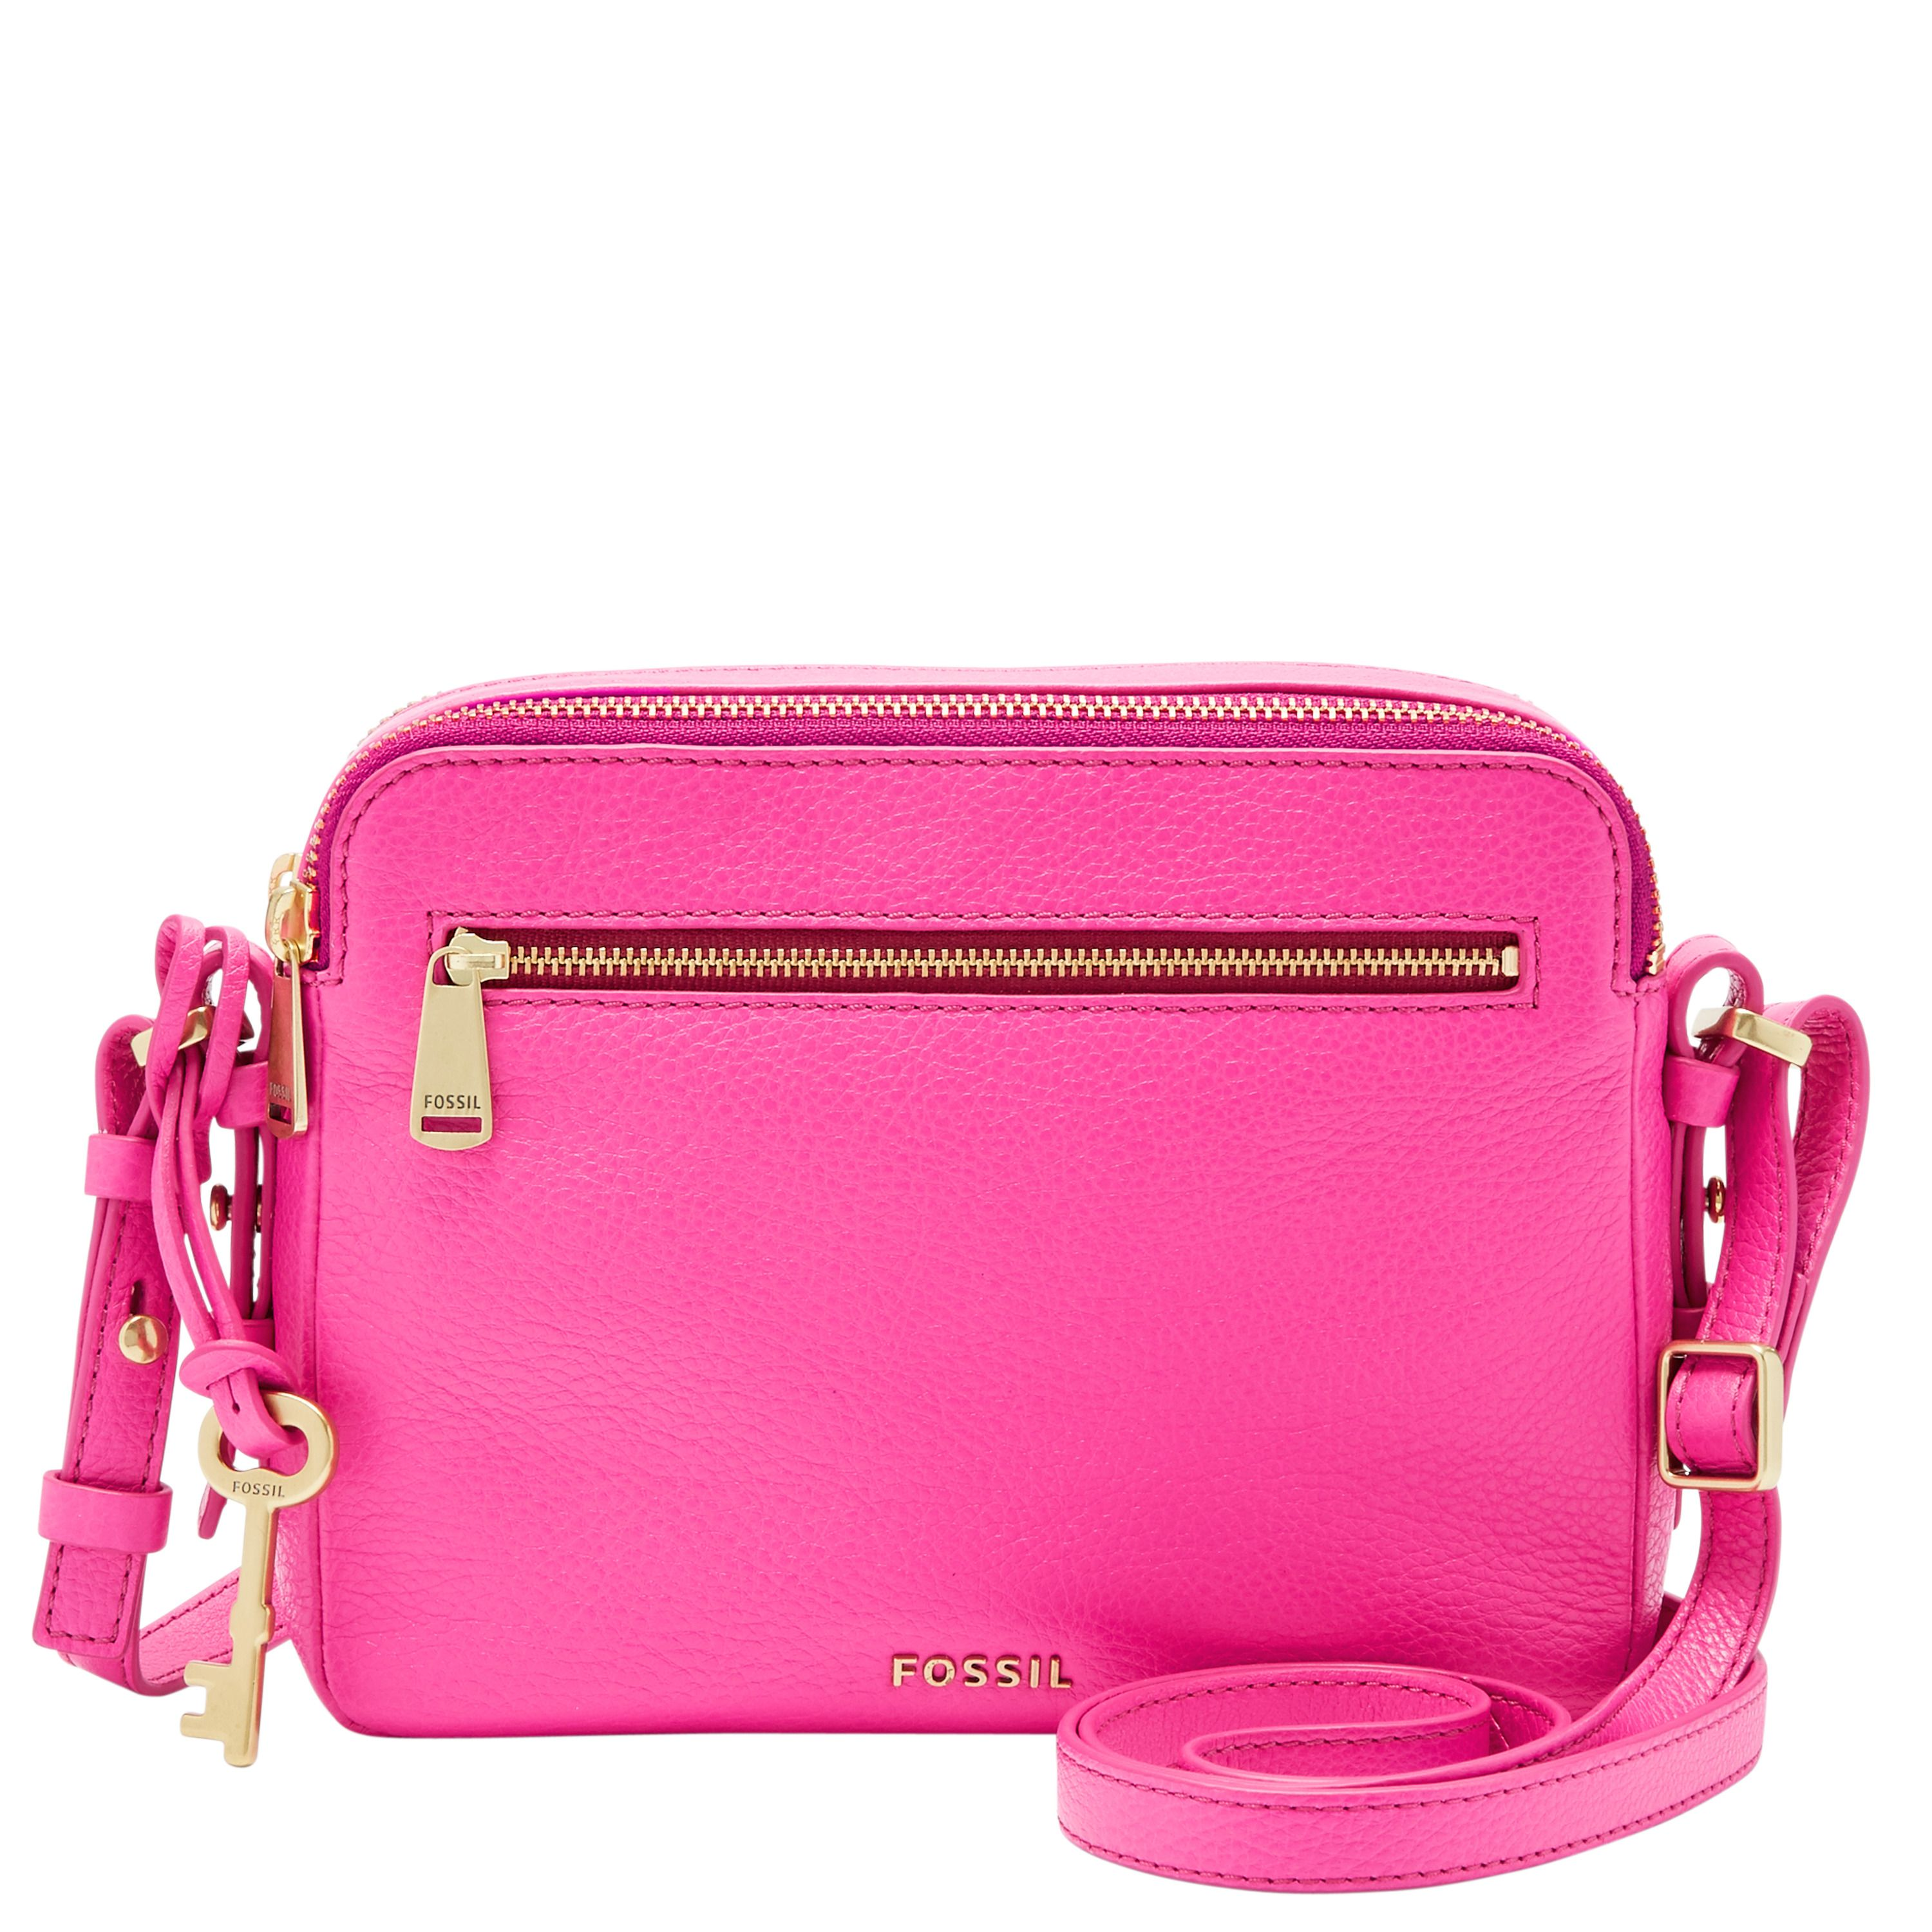 Fossil Piper toaster Pink